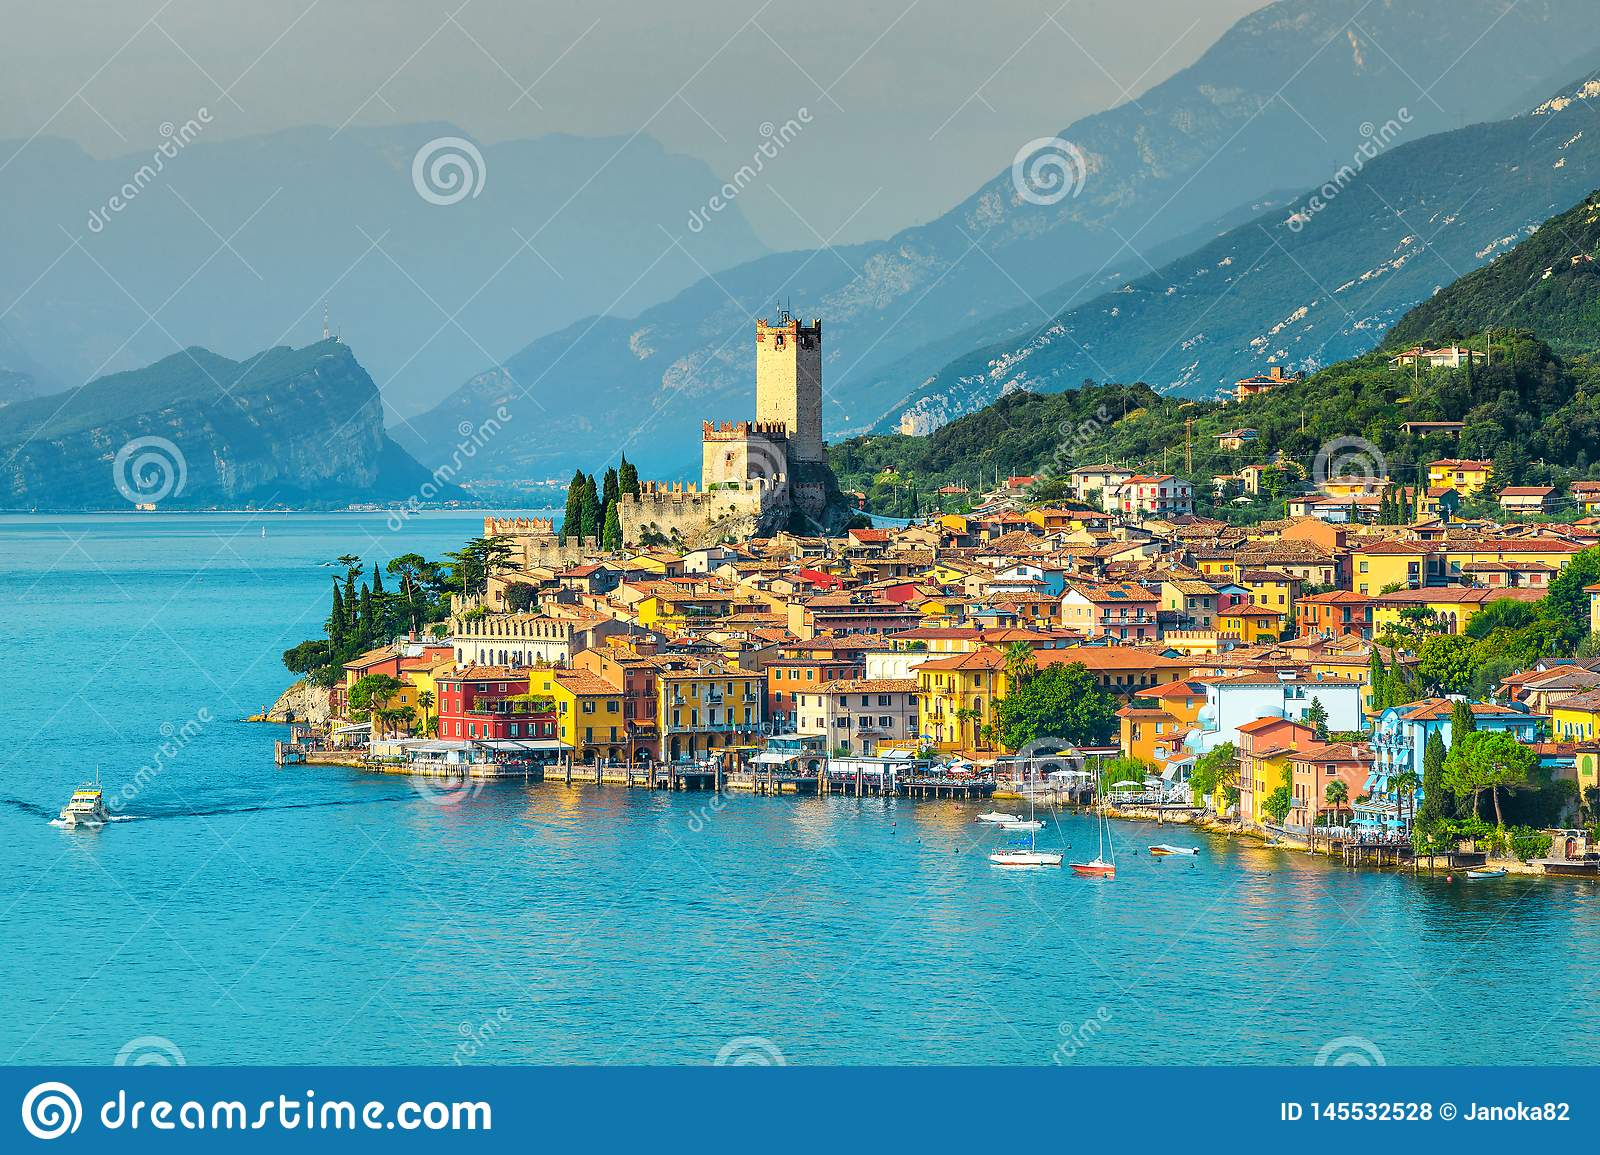 Picturesque Malcesine Tourist Resort With Colorful Buildings Garda Lake Italy Stock Photo Image Of Attraction Destination 145532528